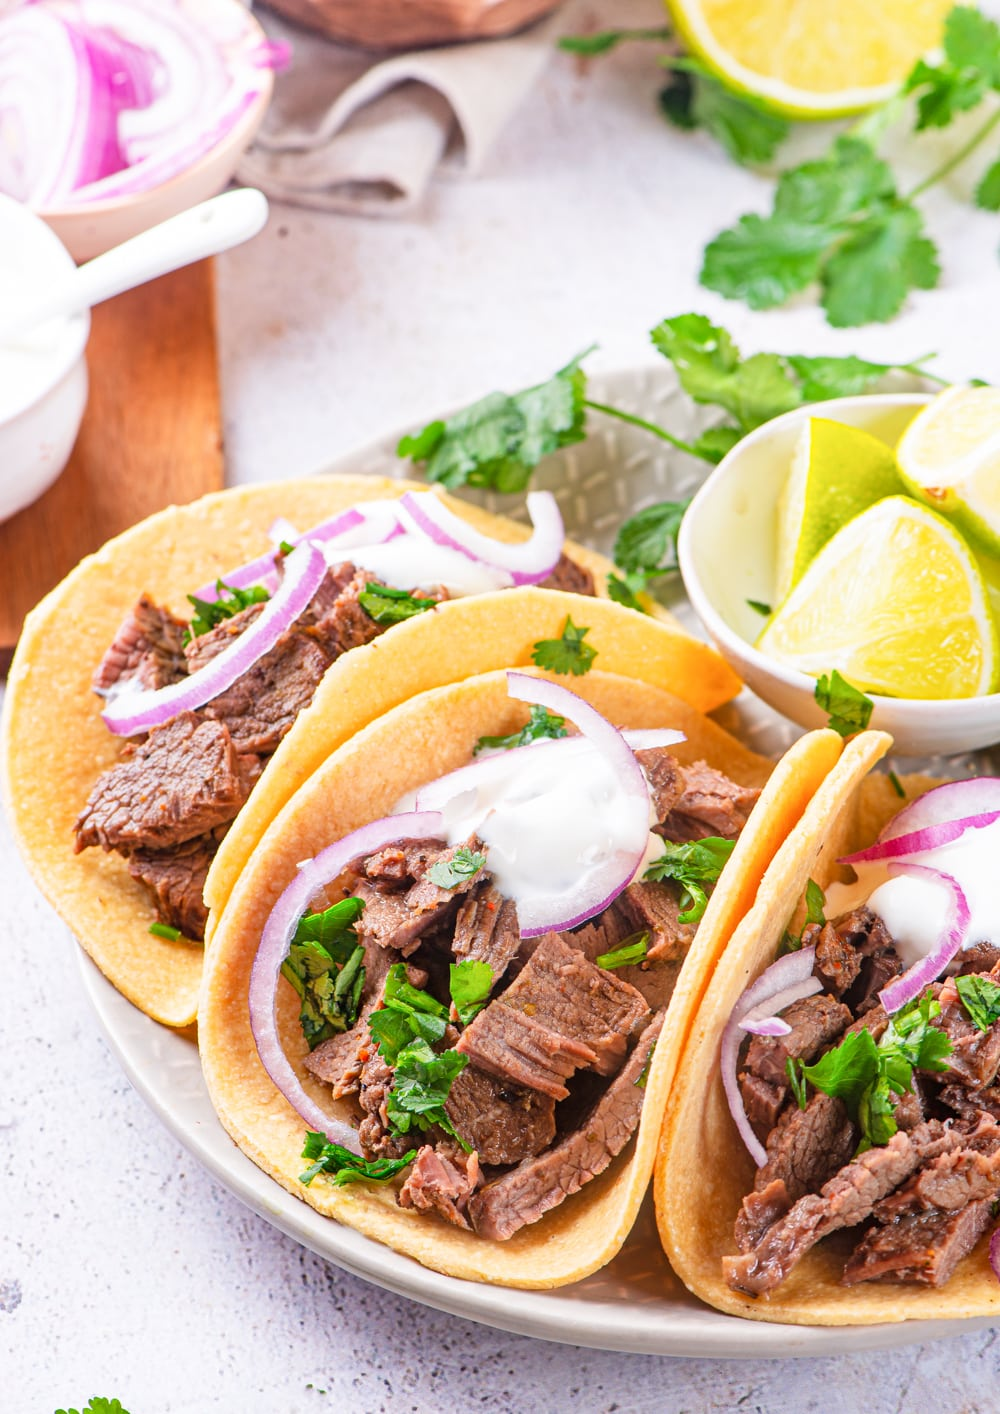 Carne Asada tacos topped with chimichurri sauce, red onions, and sour cream.